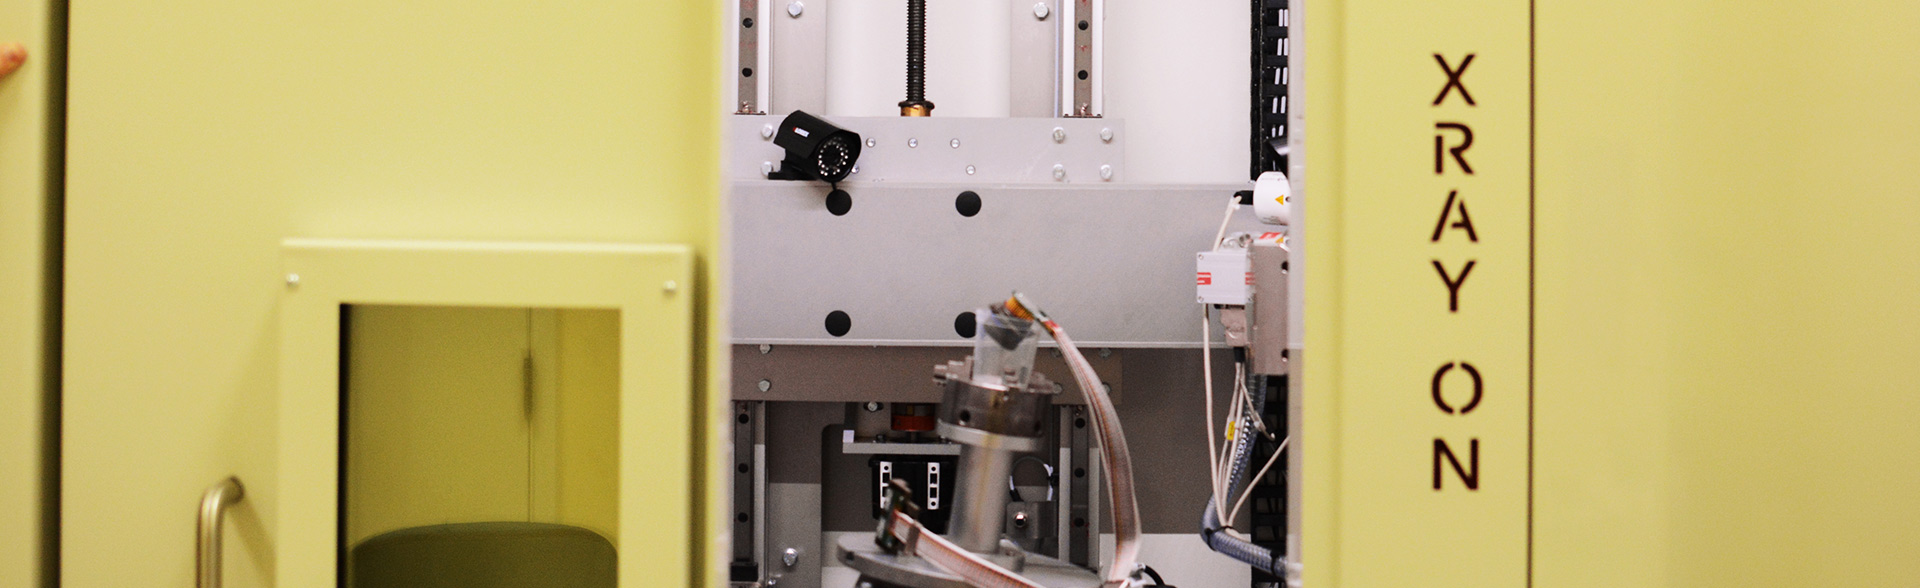 Real time- X-Ray system to visually inspect enclosed or encapsulated test samples